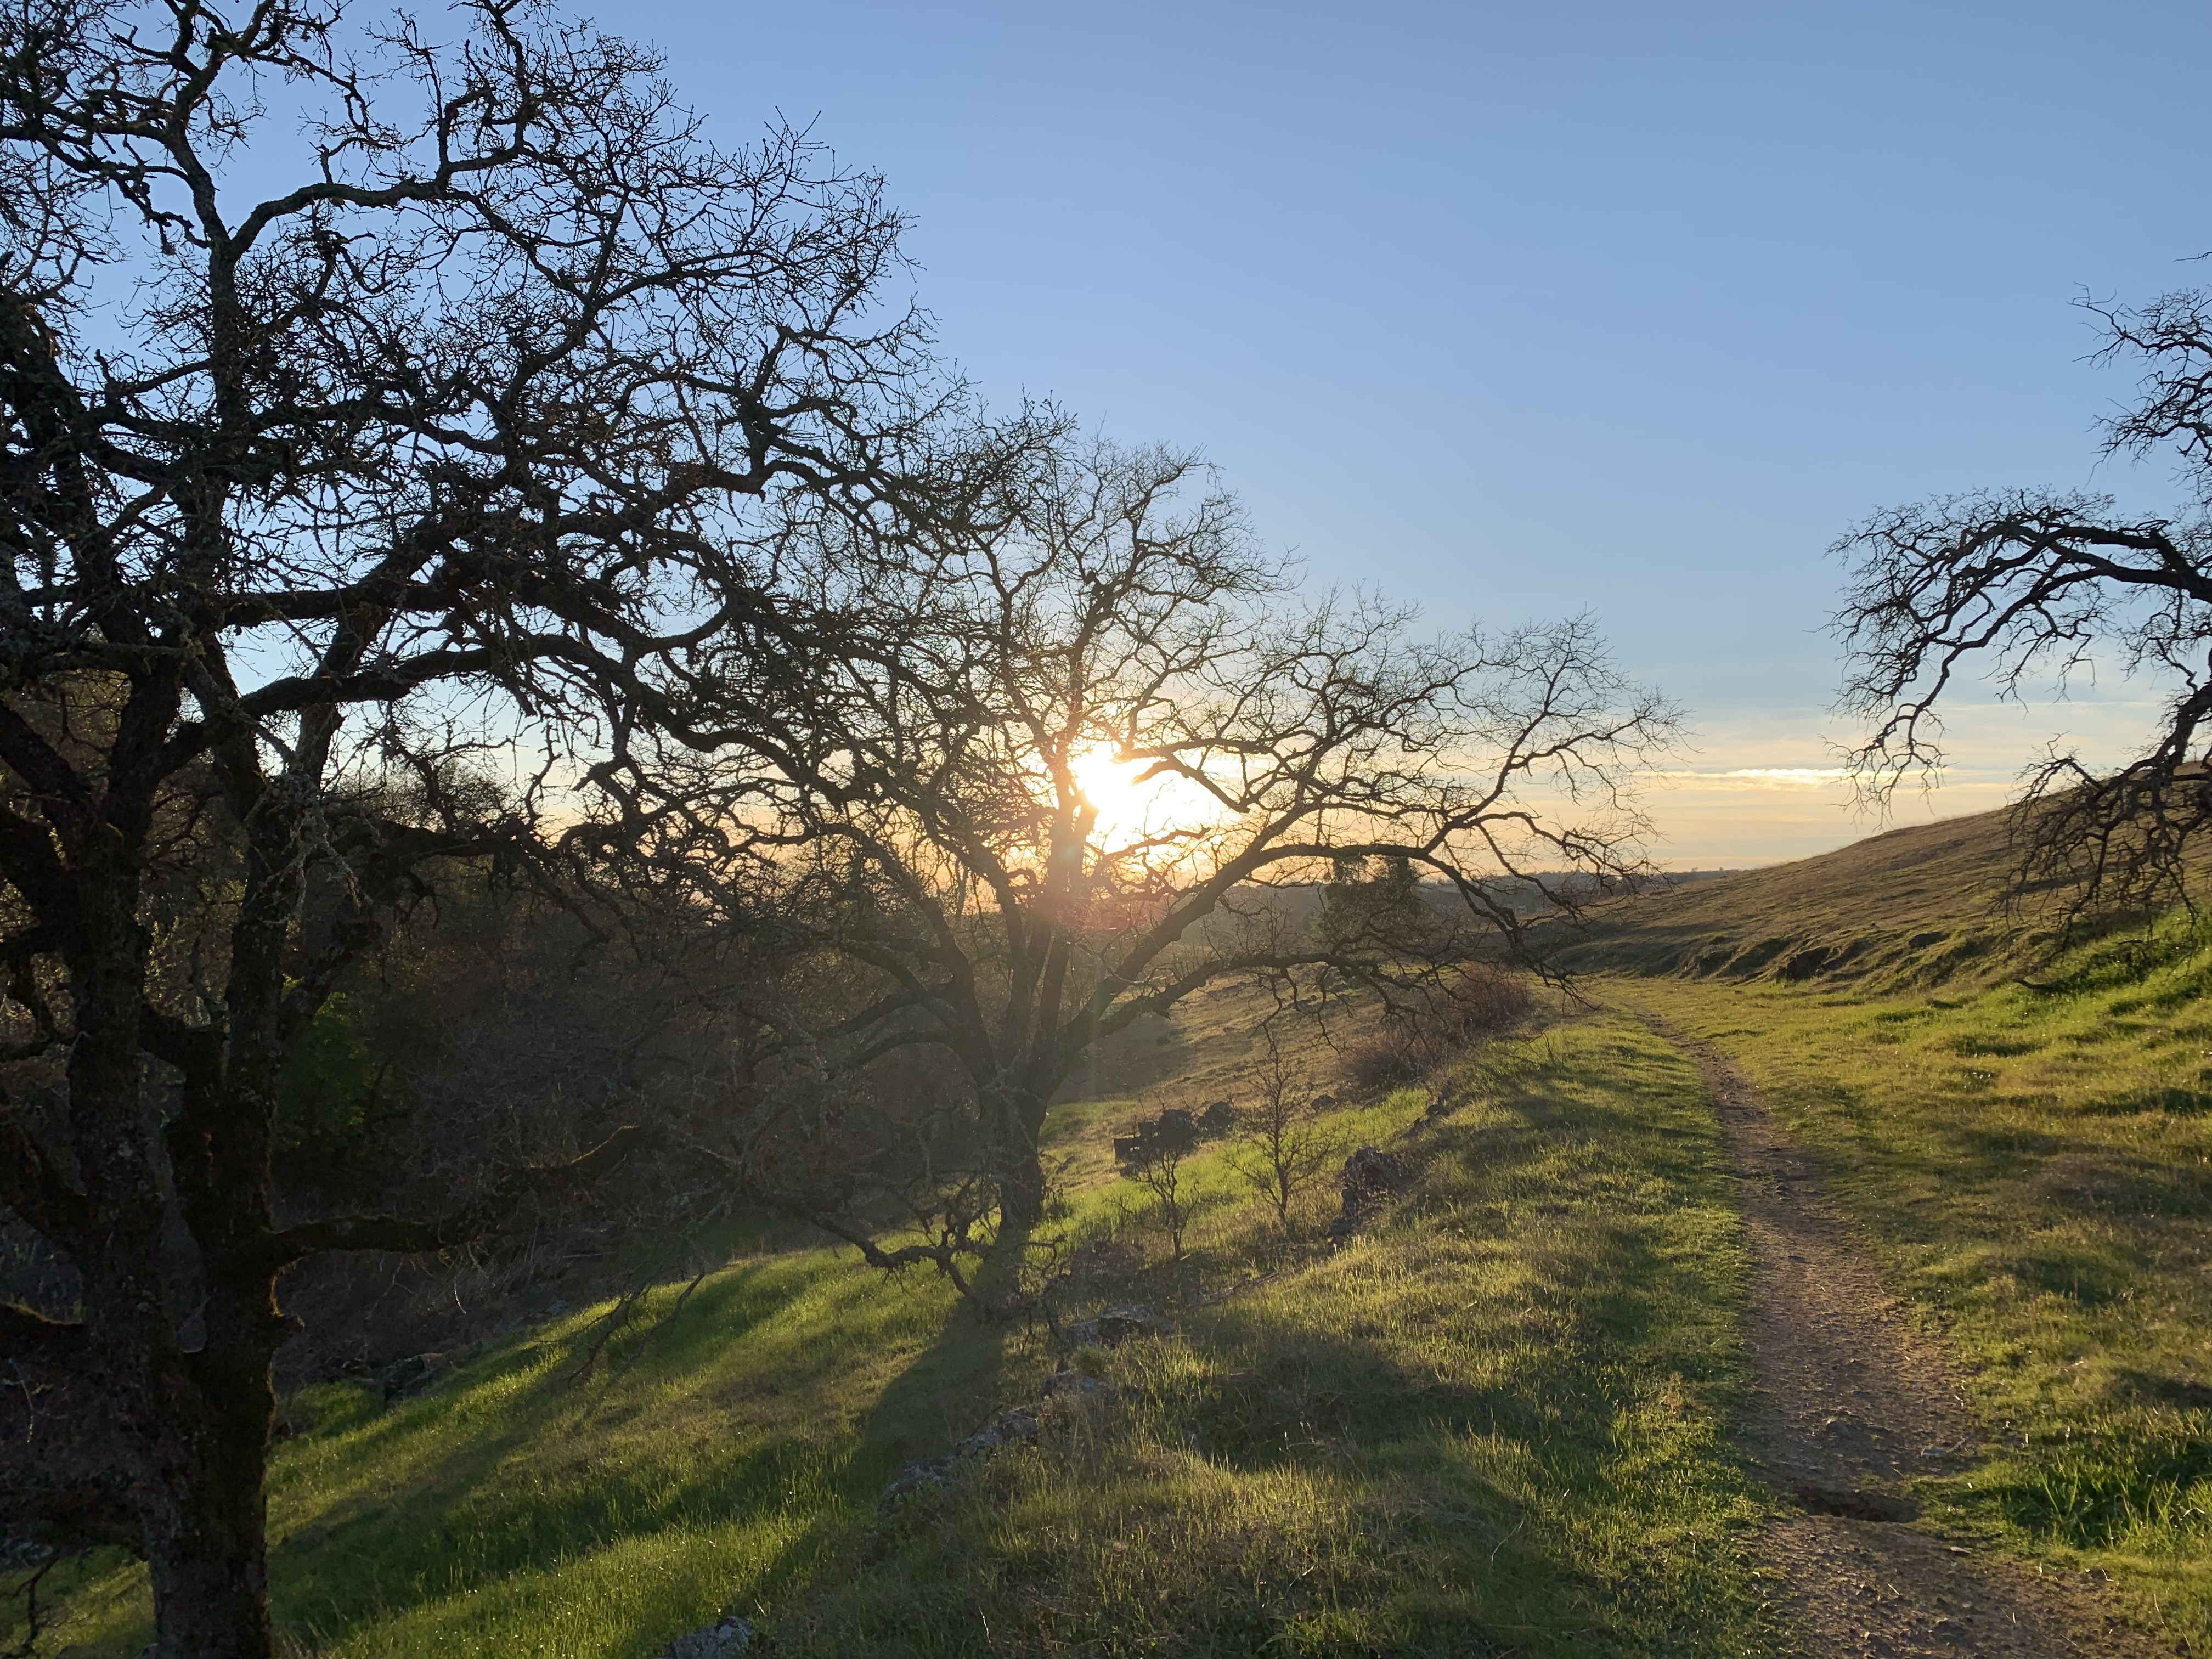 El Dorado Hills: on the Brink of Change